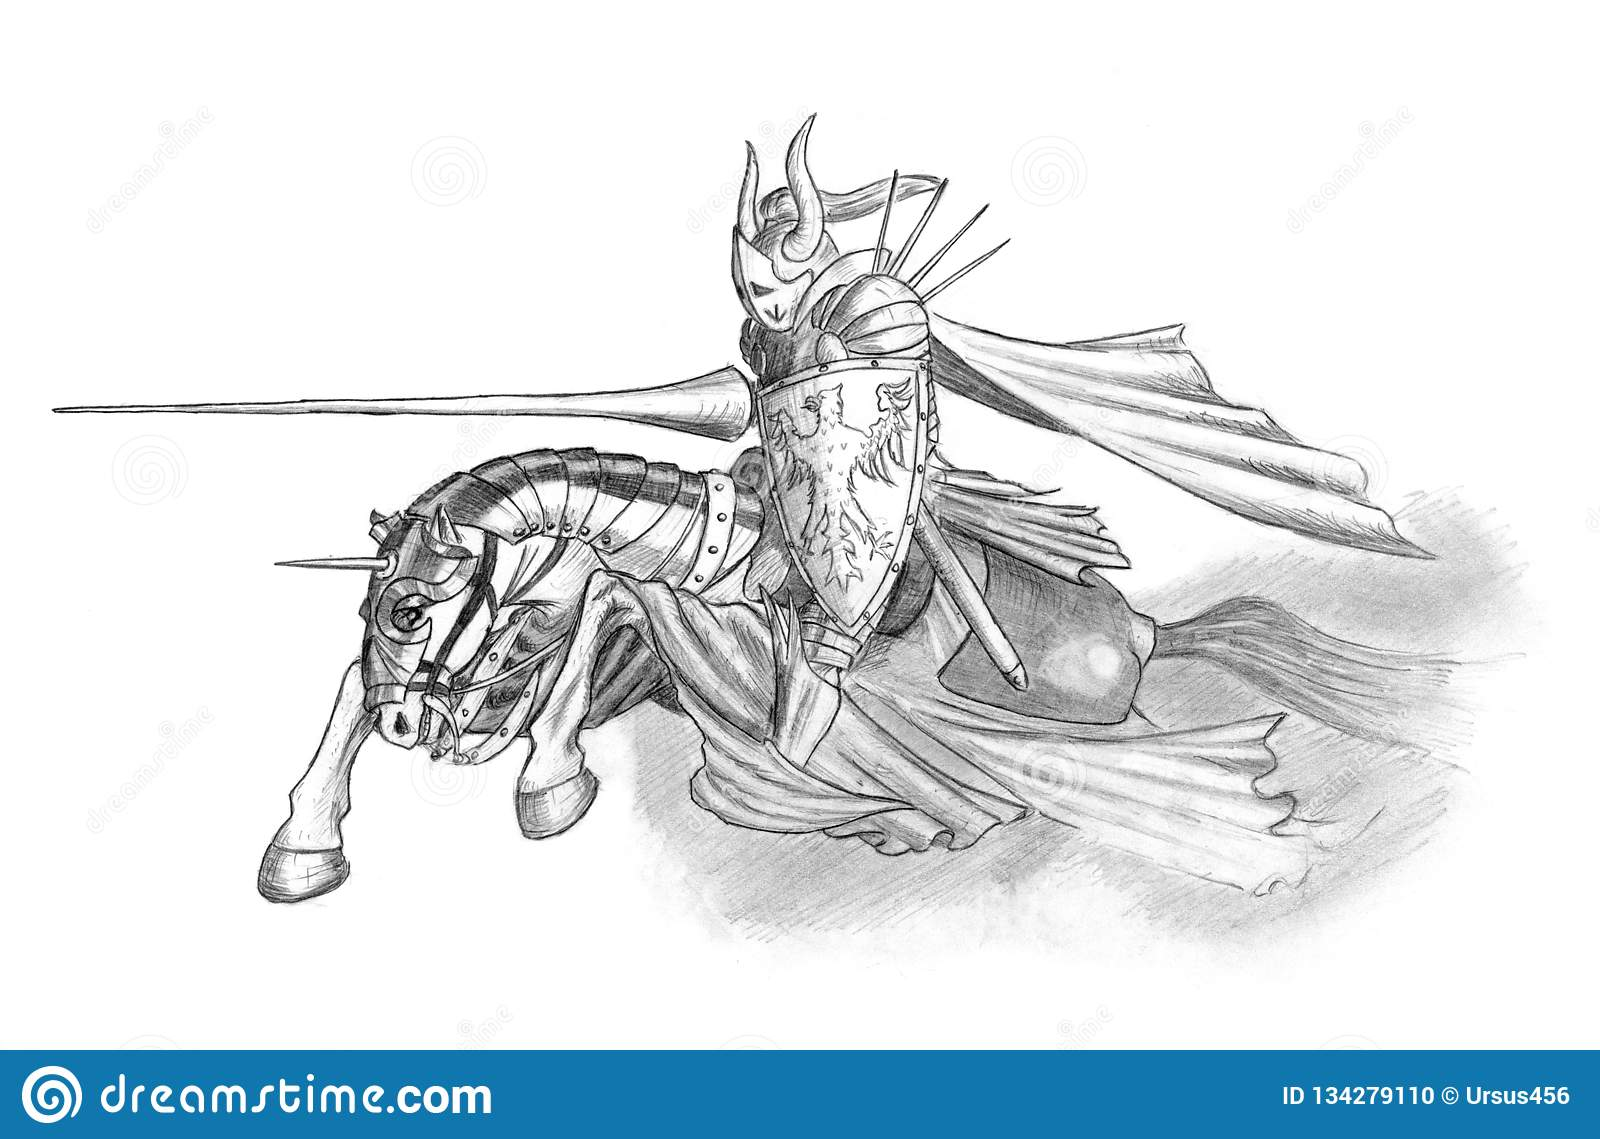 Pencil Drawing Of Medieval Or Fantasy Knight Riding On Horse With Lance Stock Illustration Illustration Of Coatofarms Armor 134279110